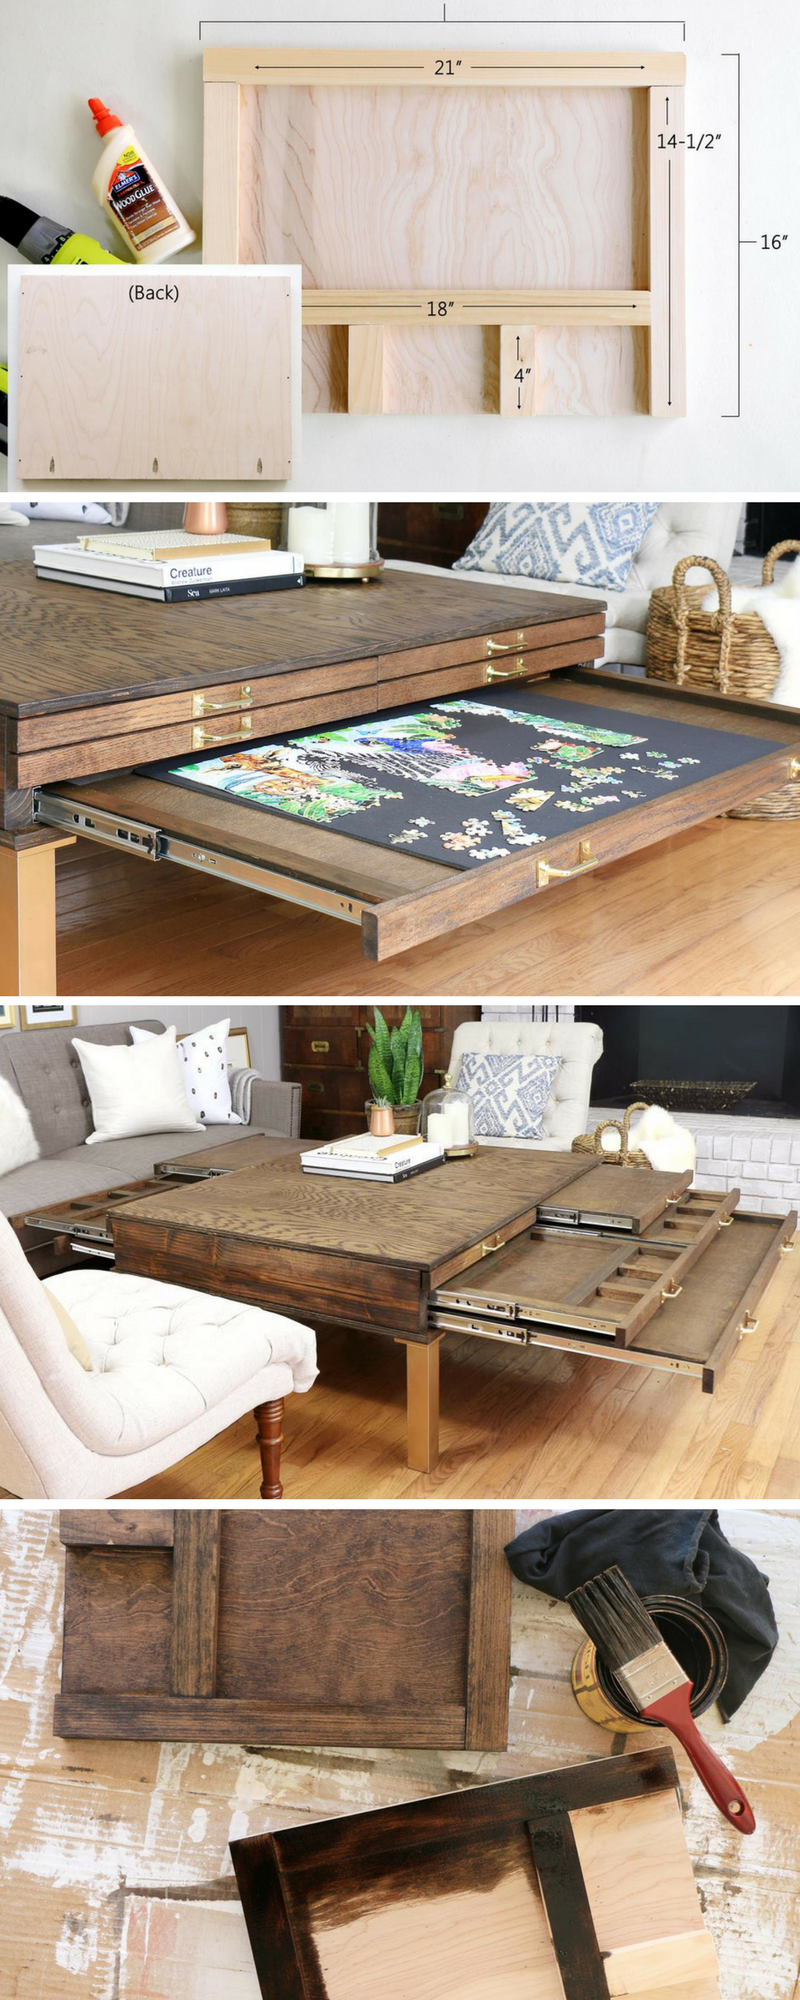 Table from a single 1 x 8 board see more diy twisty side table - How To Build A Diy Coffee Table With Pullouts For Board Games Free Project Plan